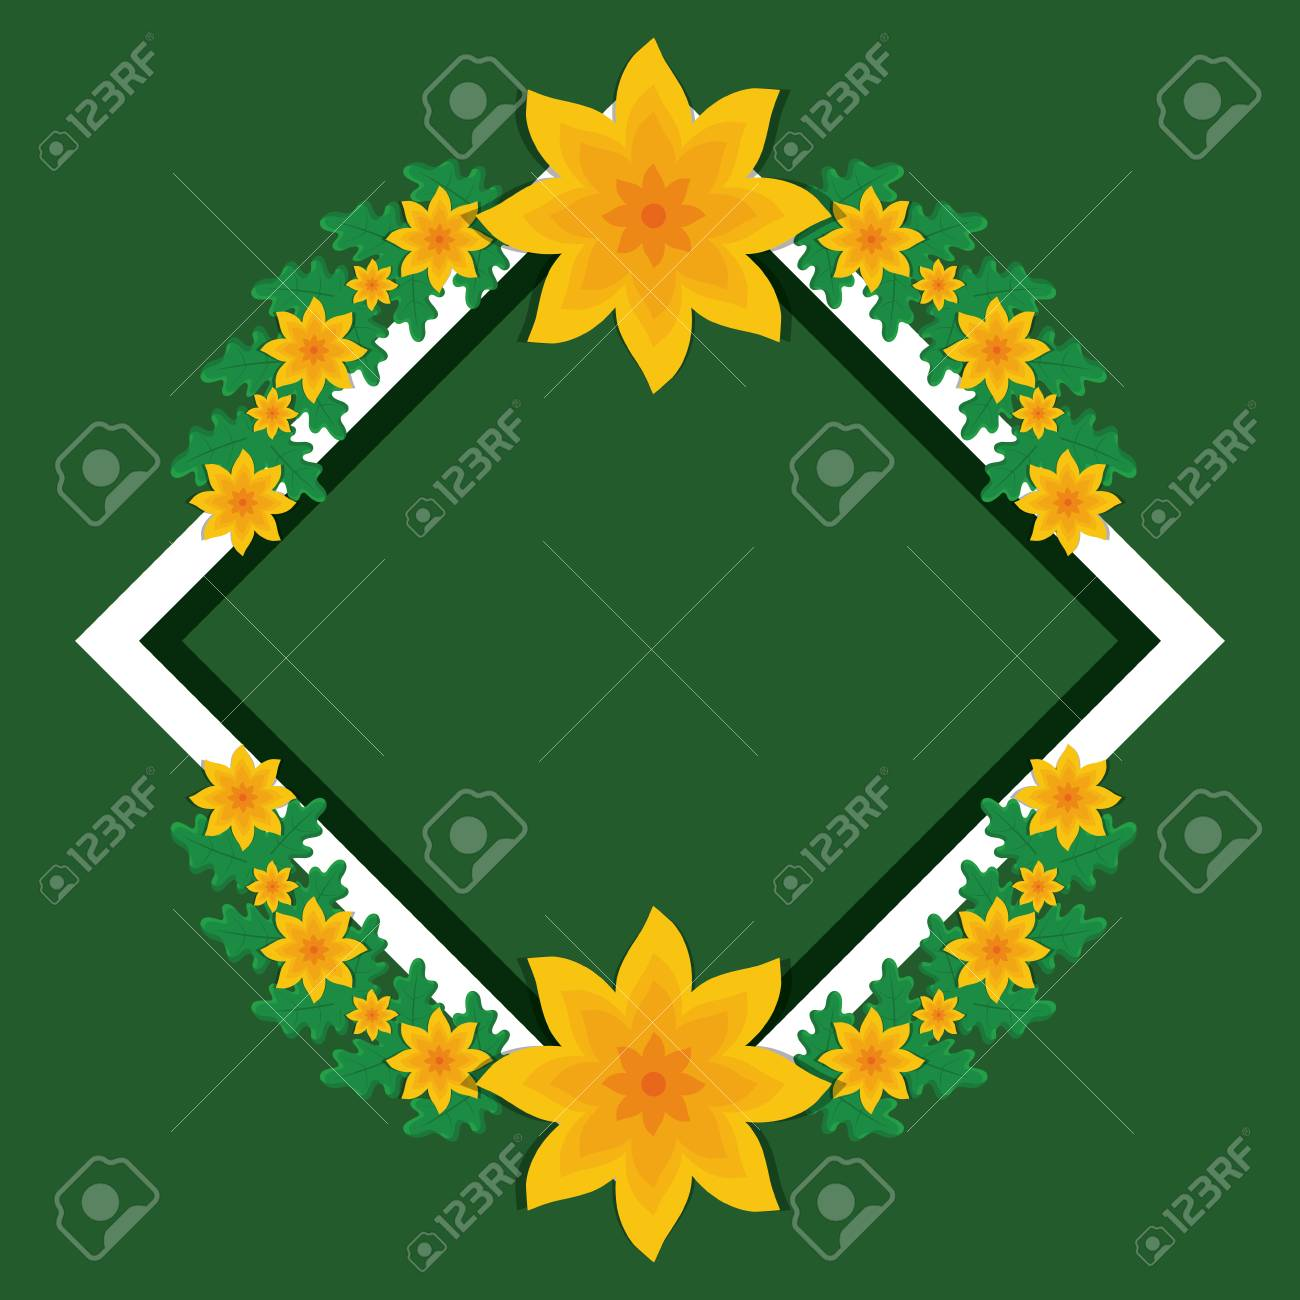 Decorative rhombus frame with tropical yellow flowers and leaves decorative rhombus frame with tropical yellow flowers and leaves over green background vector illustration mightylinksfo